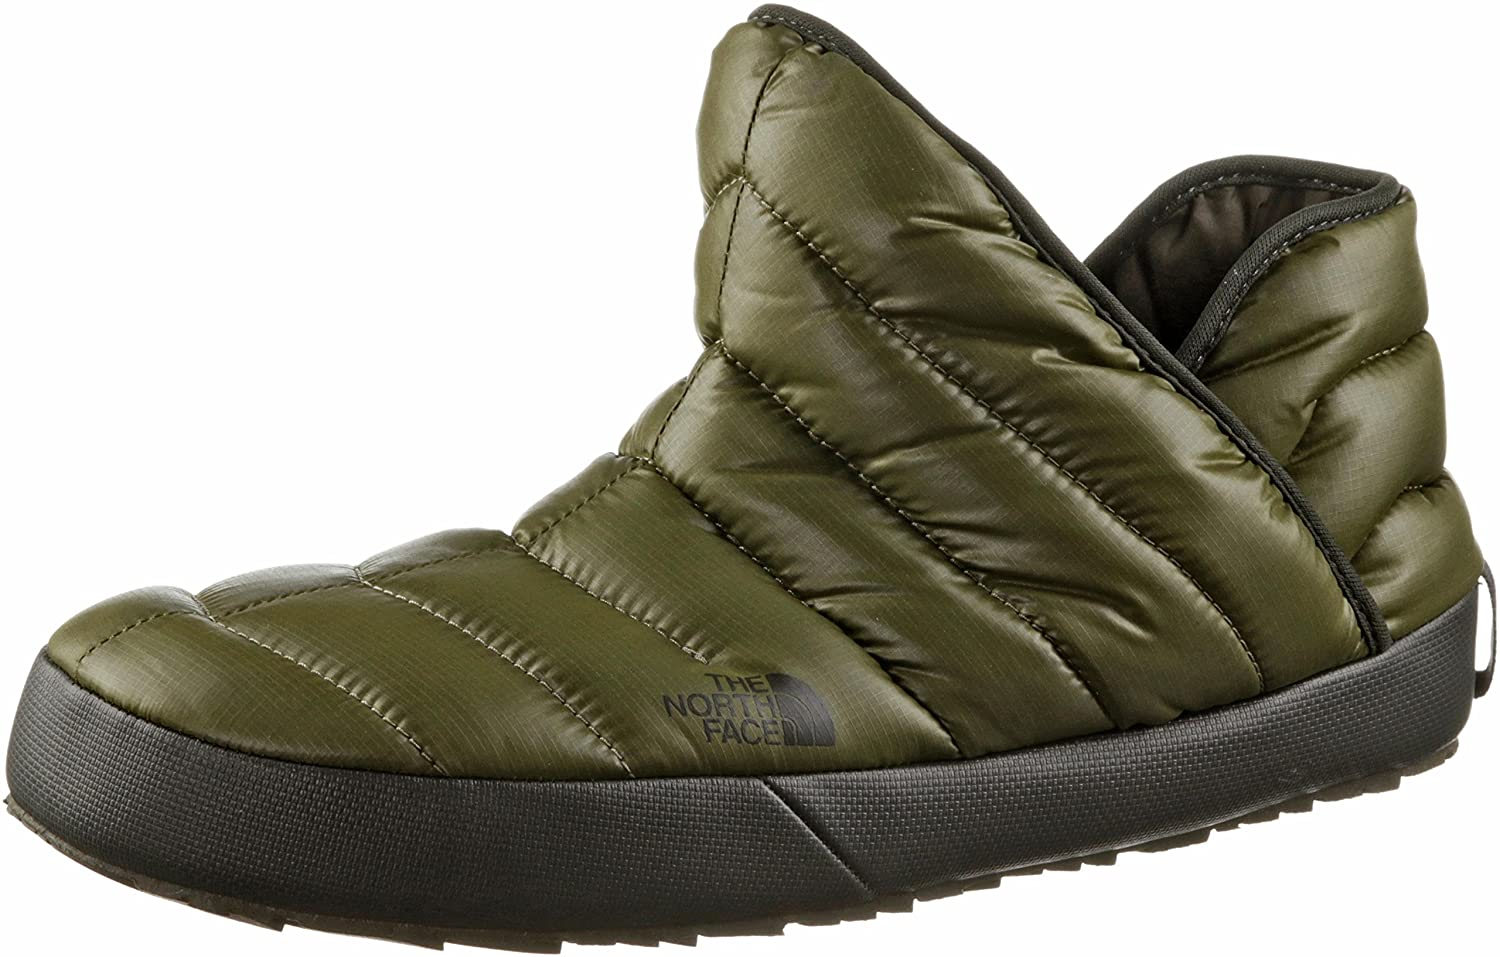 4675900be The North Face Men's Thermoball Traction Bootie - Shiny Burnt Olive Green,  UK 8